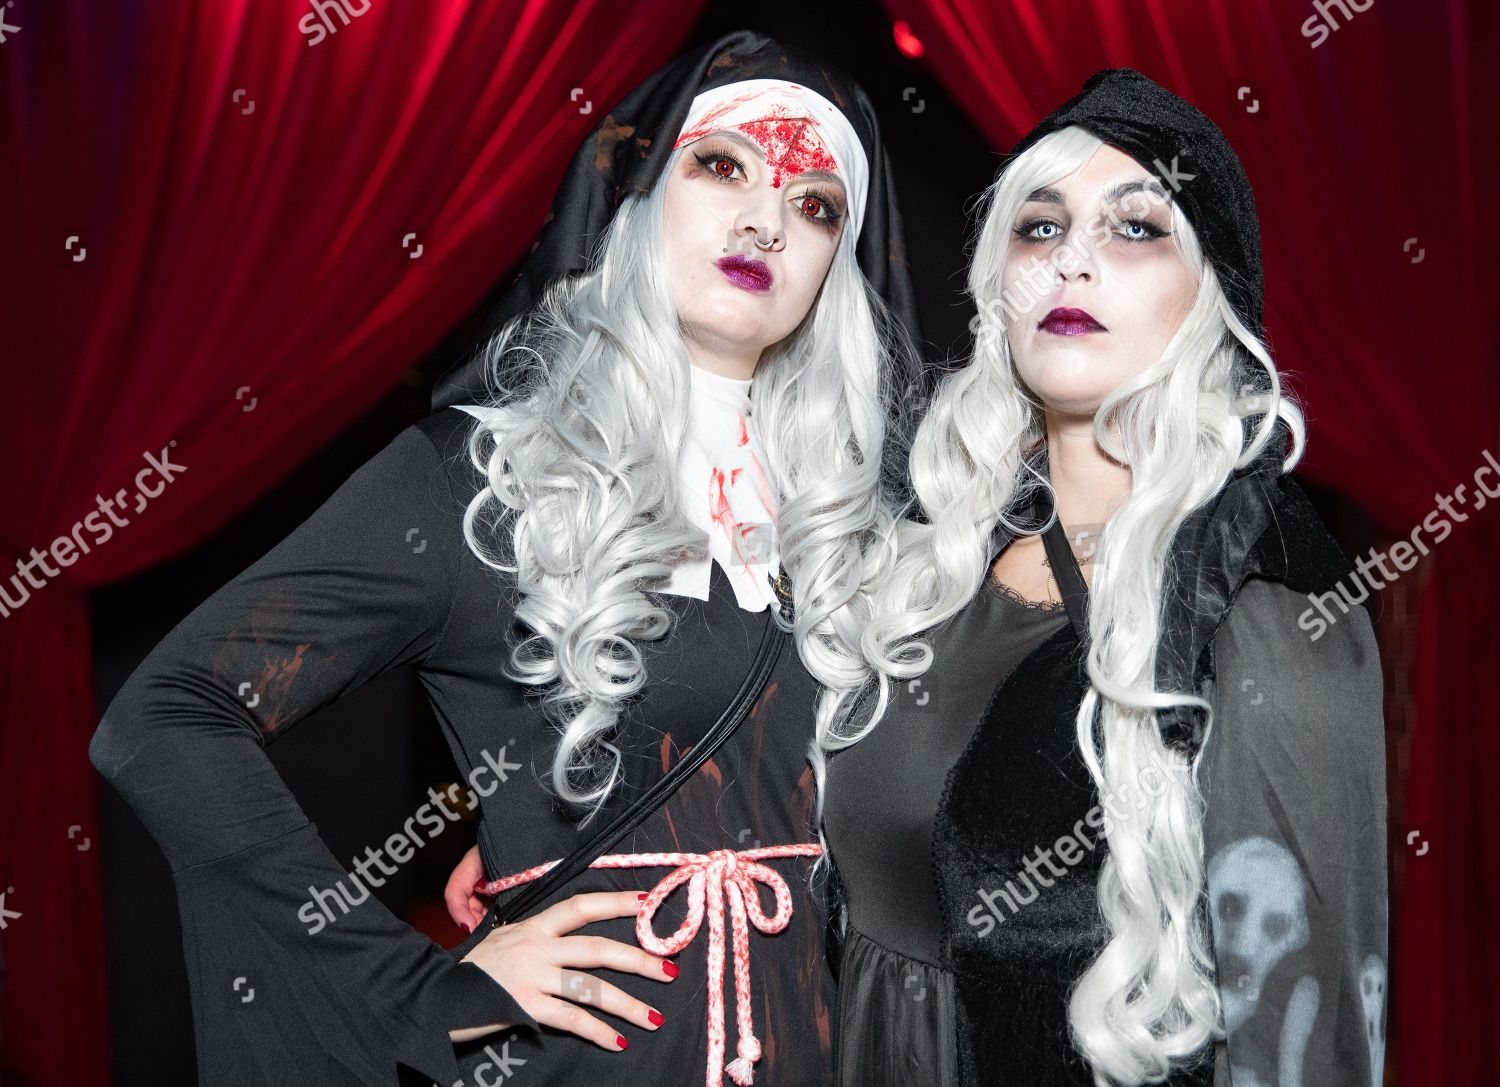 Berlin Gothic People Costume Attend Halloween Party Kulturbrauerei Berlin